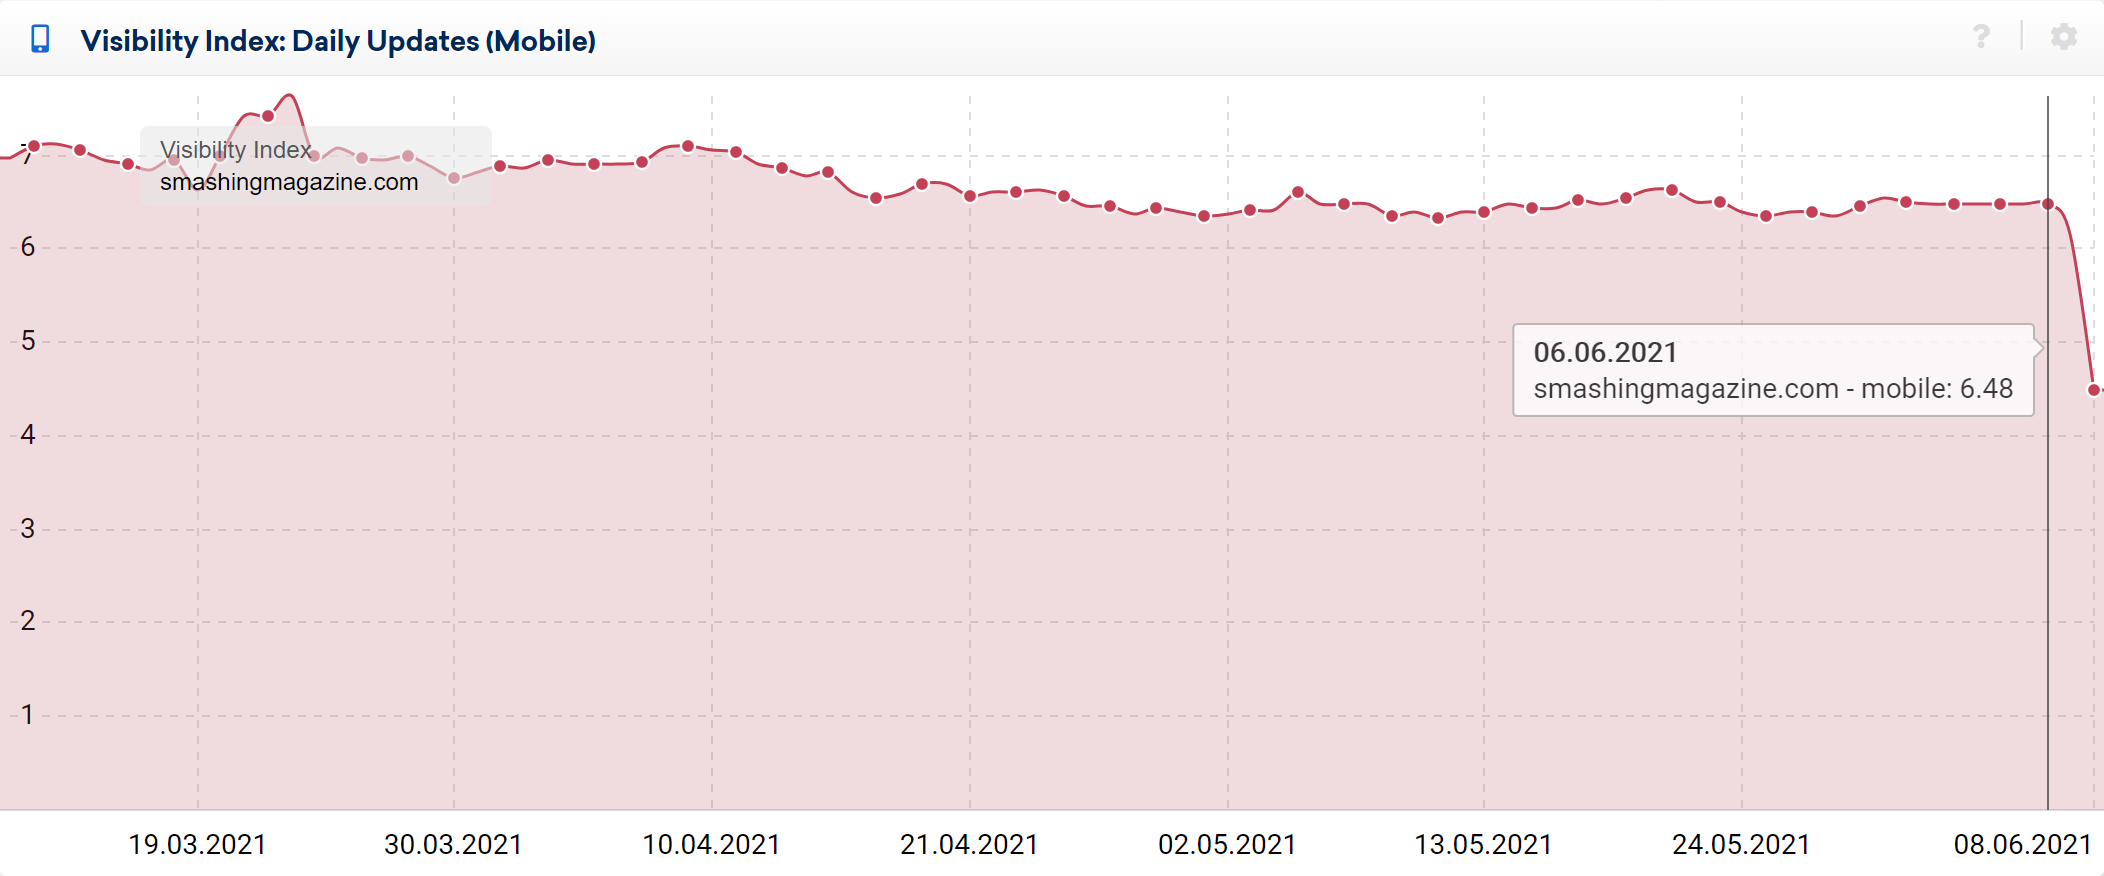 Domain visibility losses at smashingmagazine.com show in the Visibility Index graph